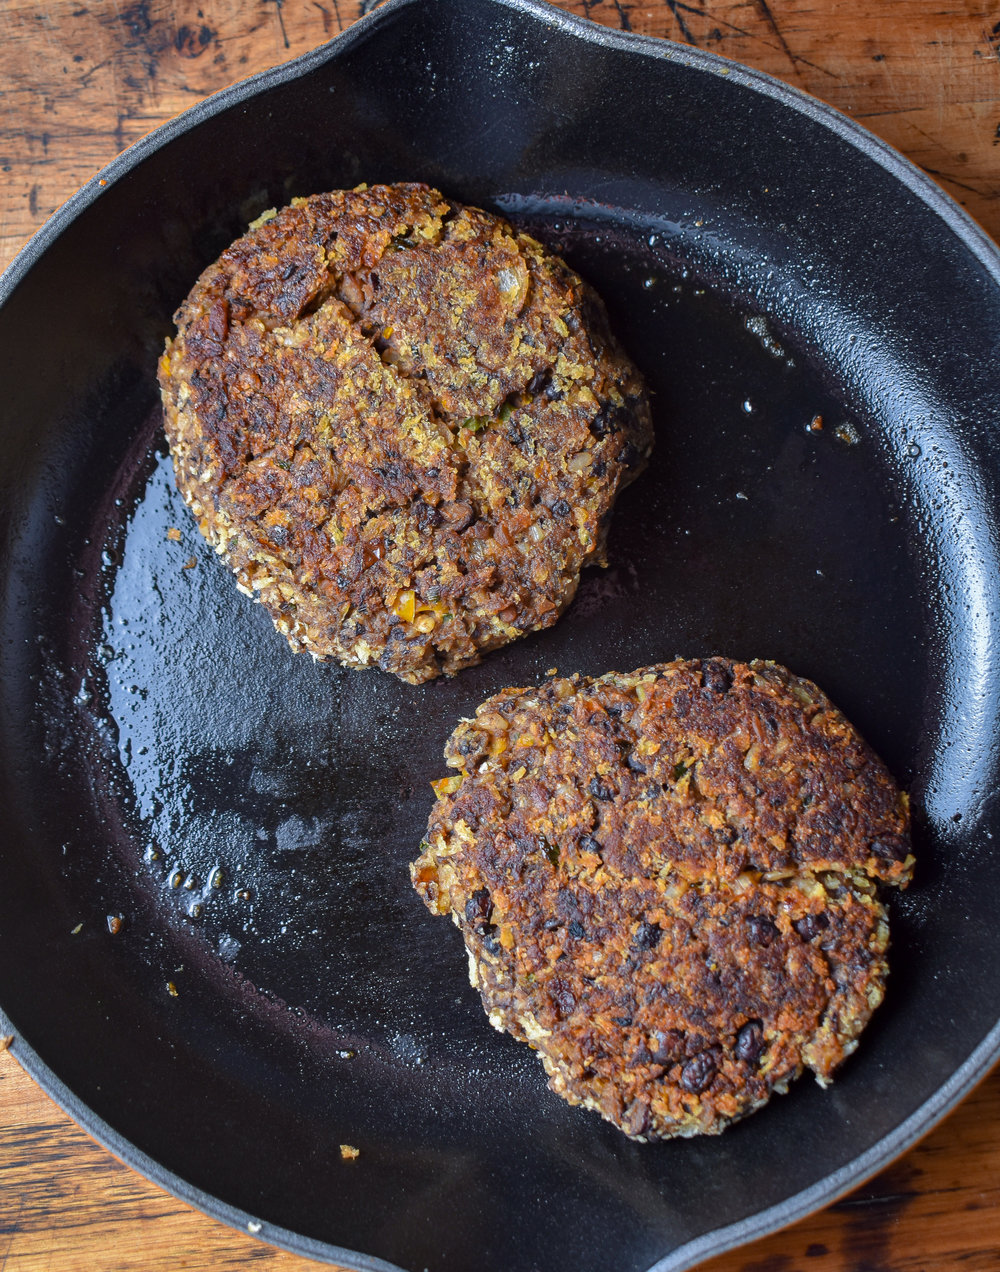 8. Using a large frying pan, add a bit of vegan butter or olive oil to coat the bottoom of the pan. In 2 batches, cook the patties. I like to cook them at just over medium heat for about 4-5 minutes on each side until golden and browning.